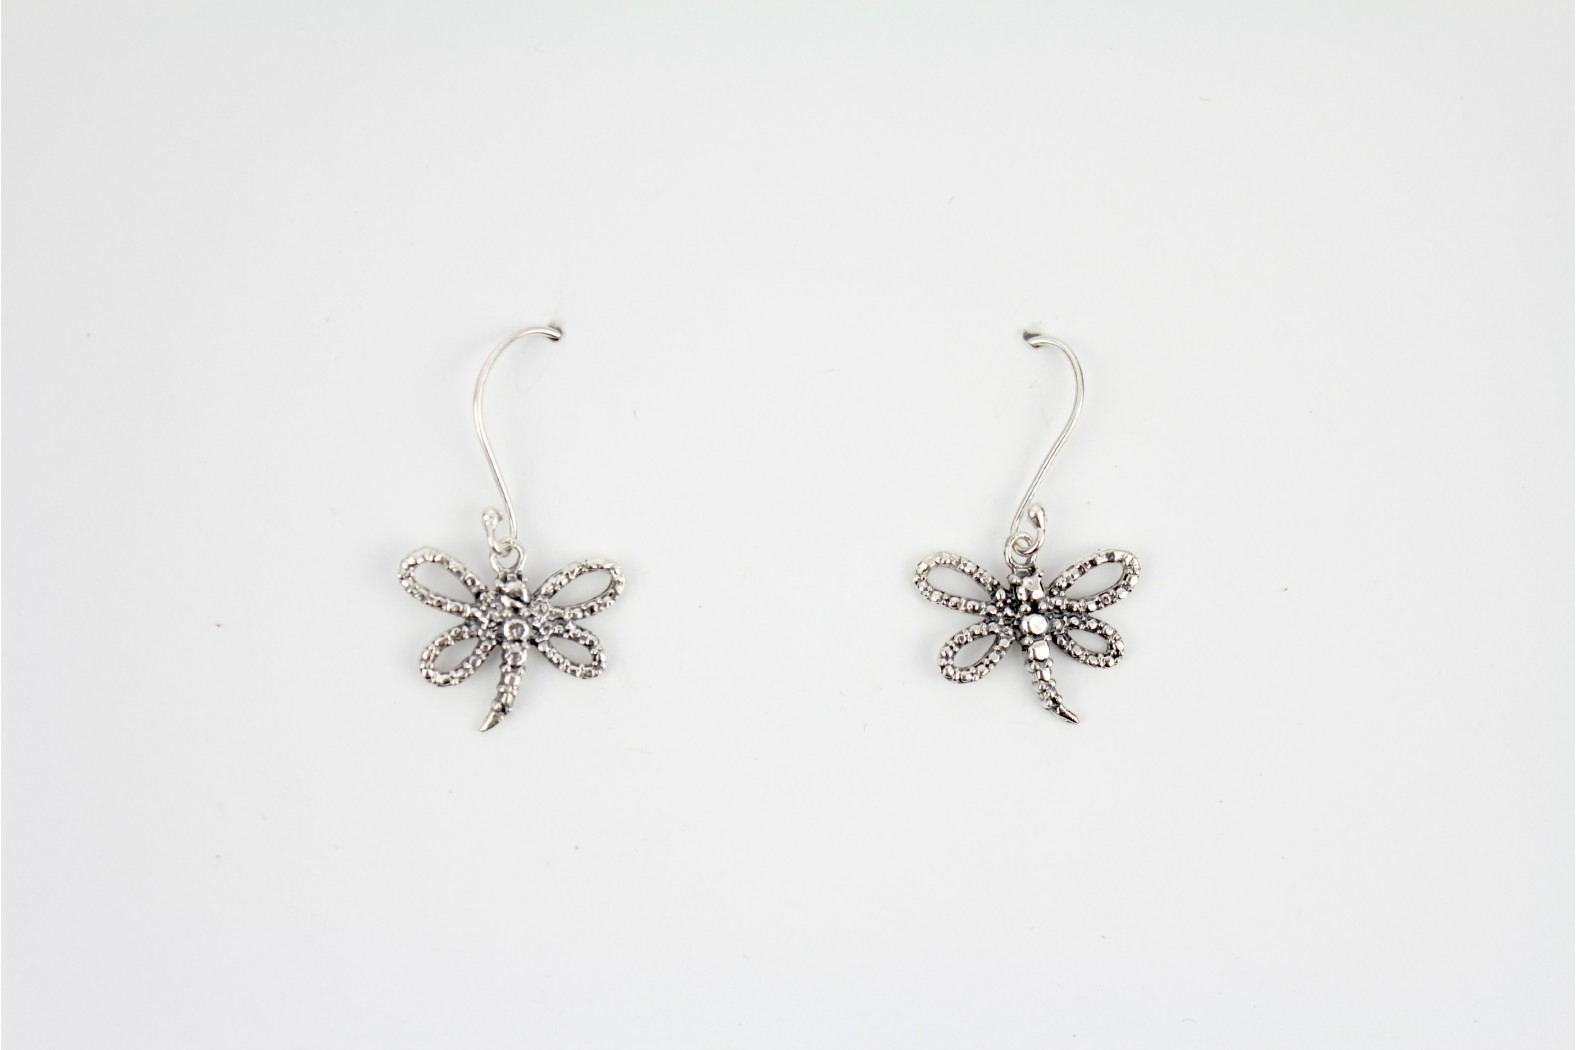 Fine detailing Dragon Fly style aged silver design